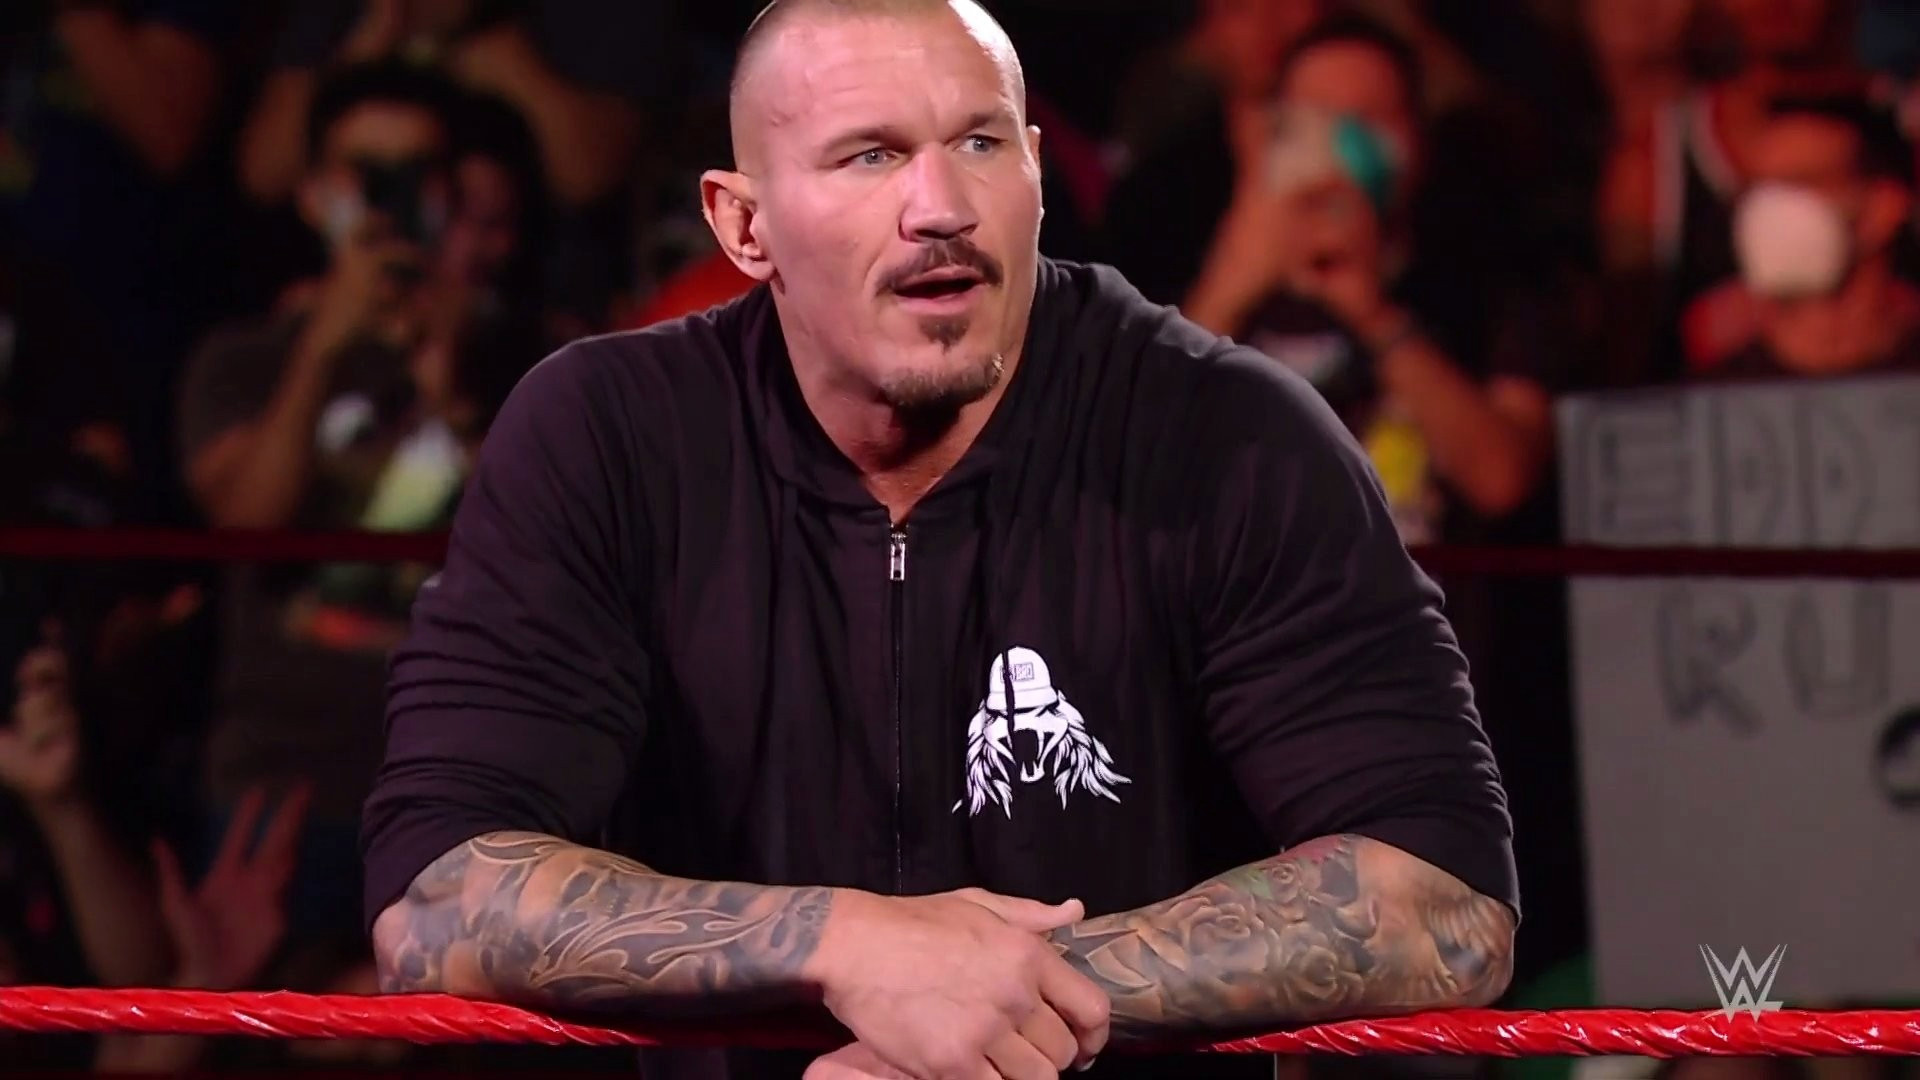 WWE legend Randy Orton returns with moustache and soul patch but fans aren't sure what to think